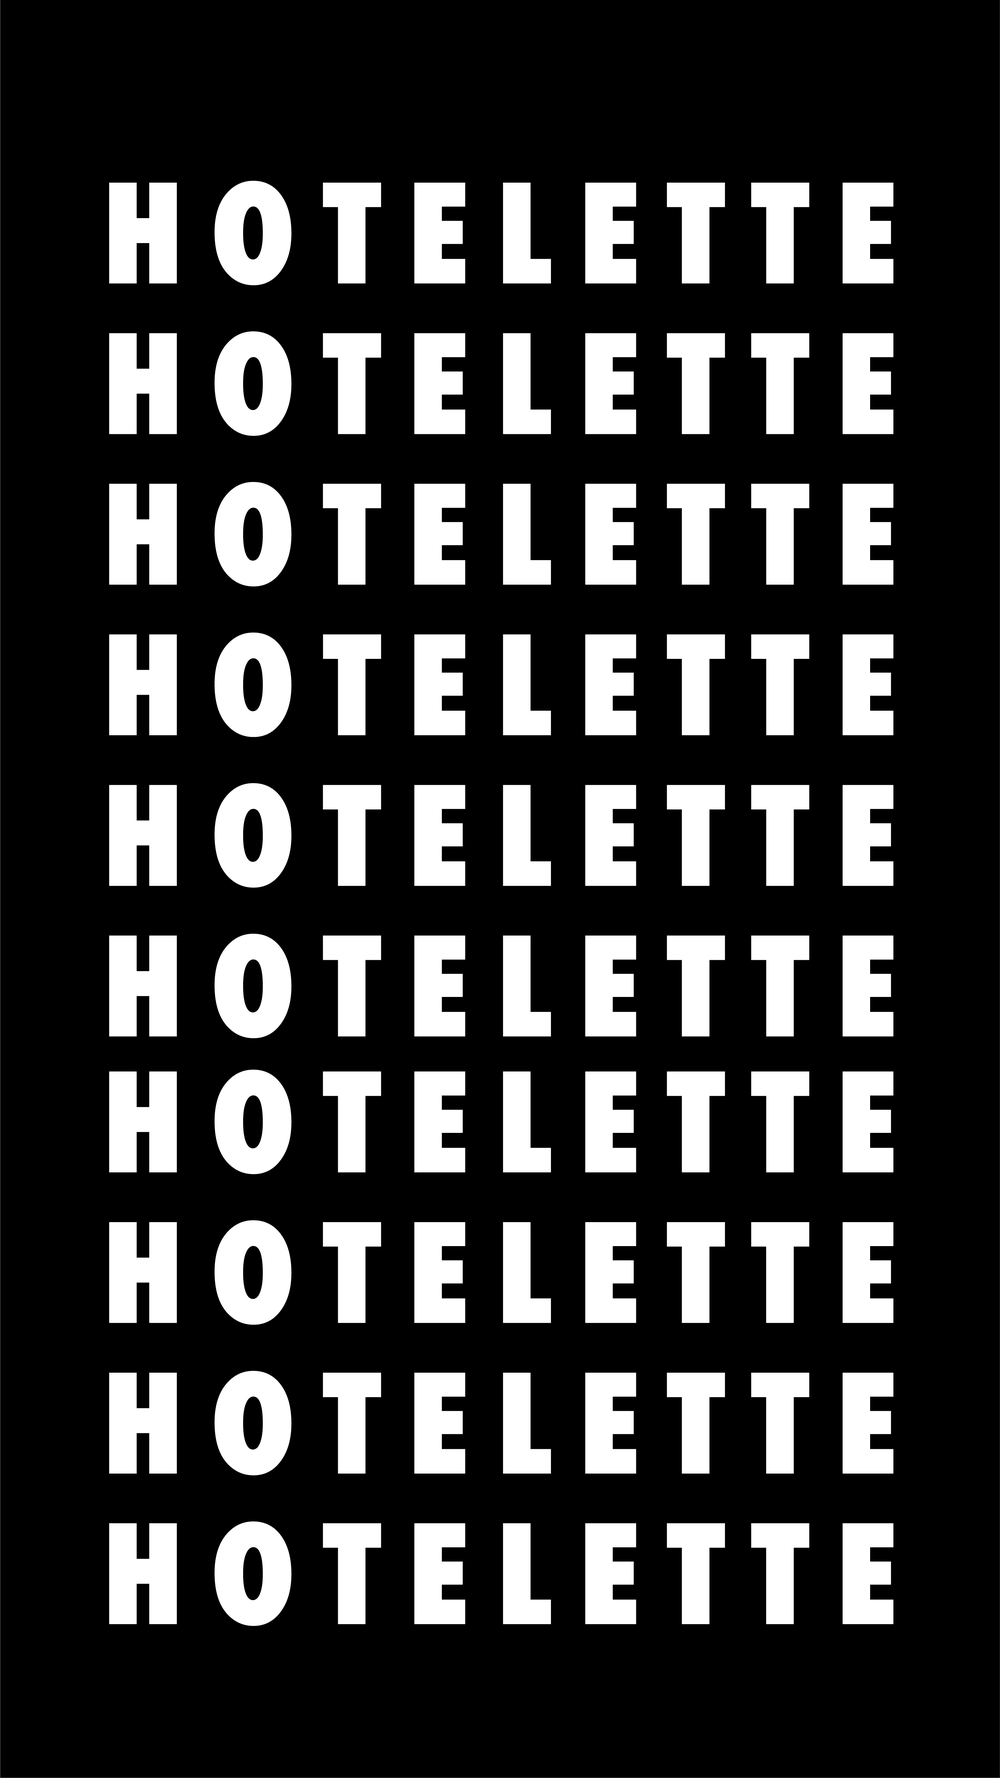 HOTELette Posters-03.png